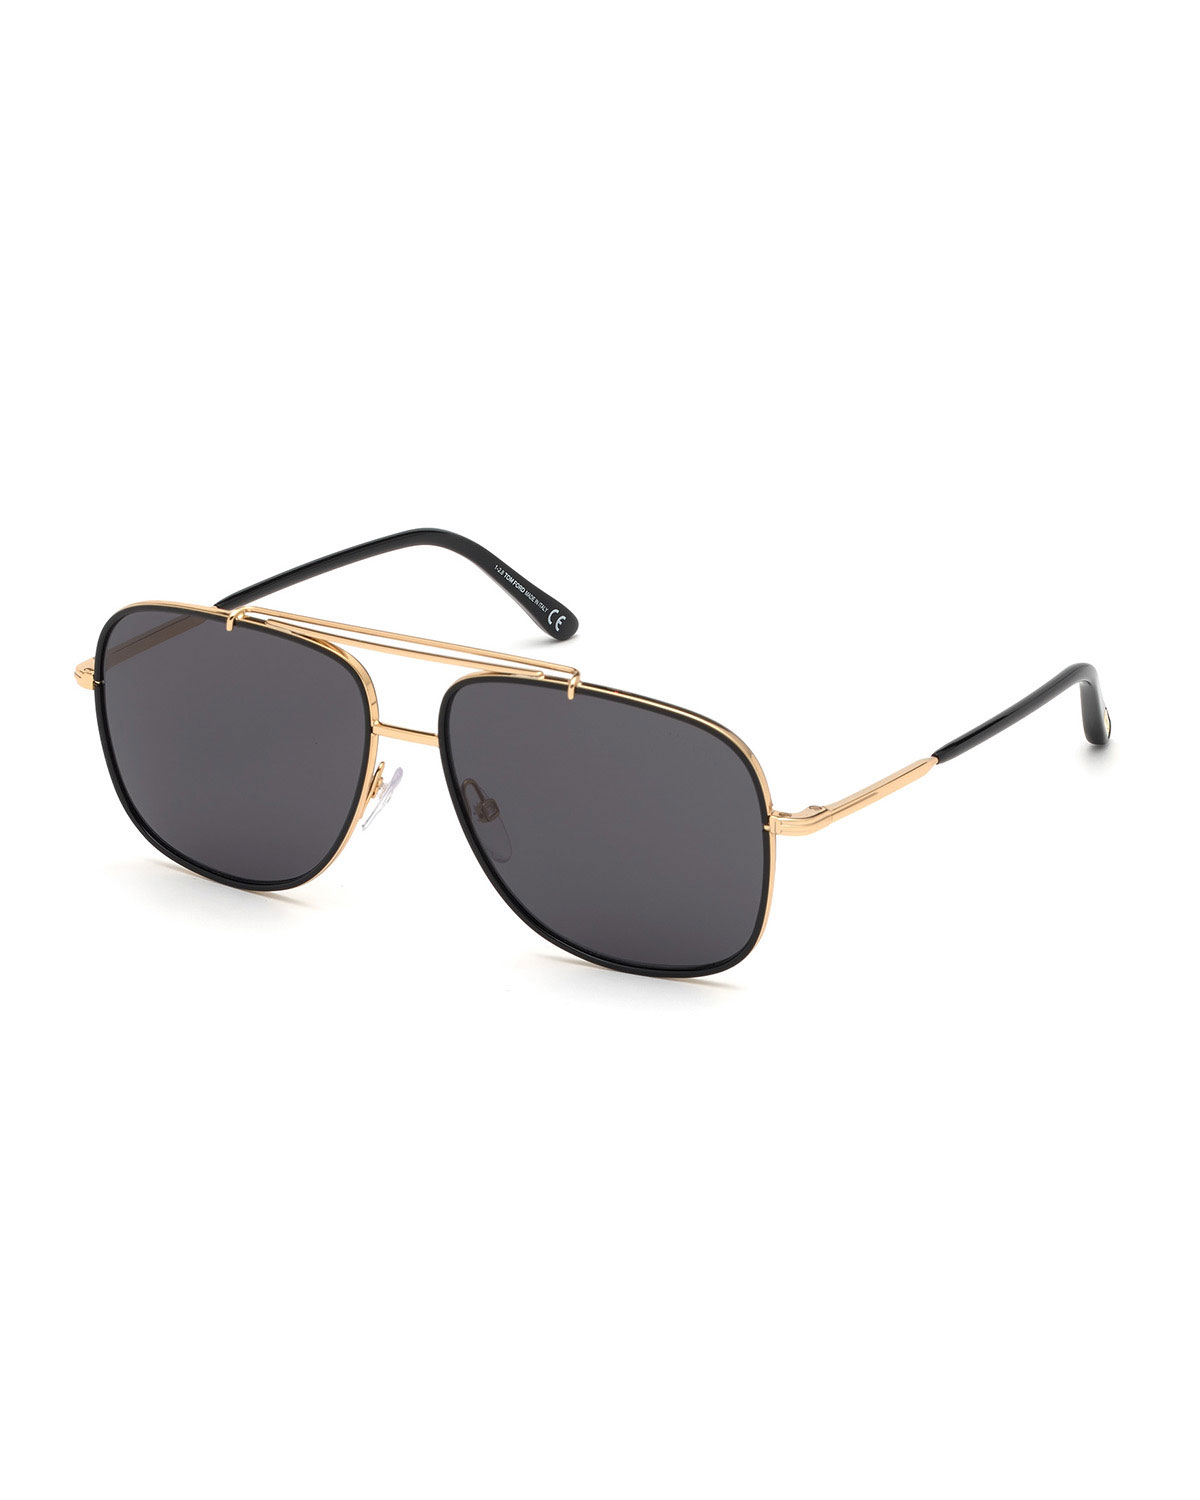 TOM FORD Men's Benton Yellow Golden Aviator Sunglasses